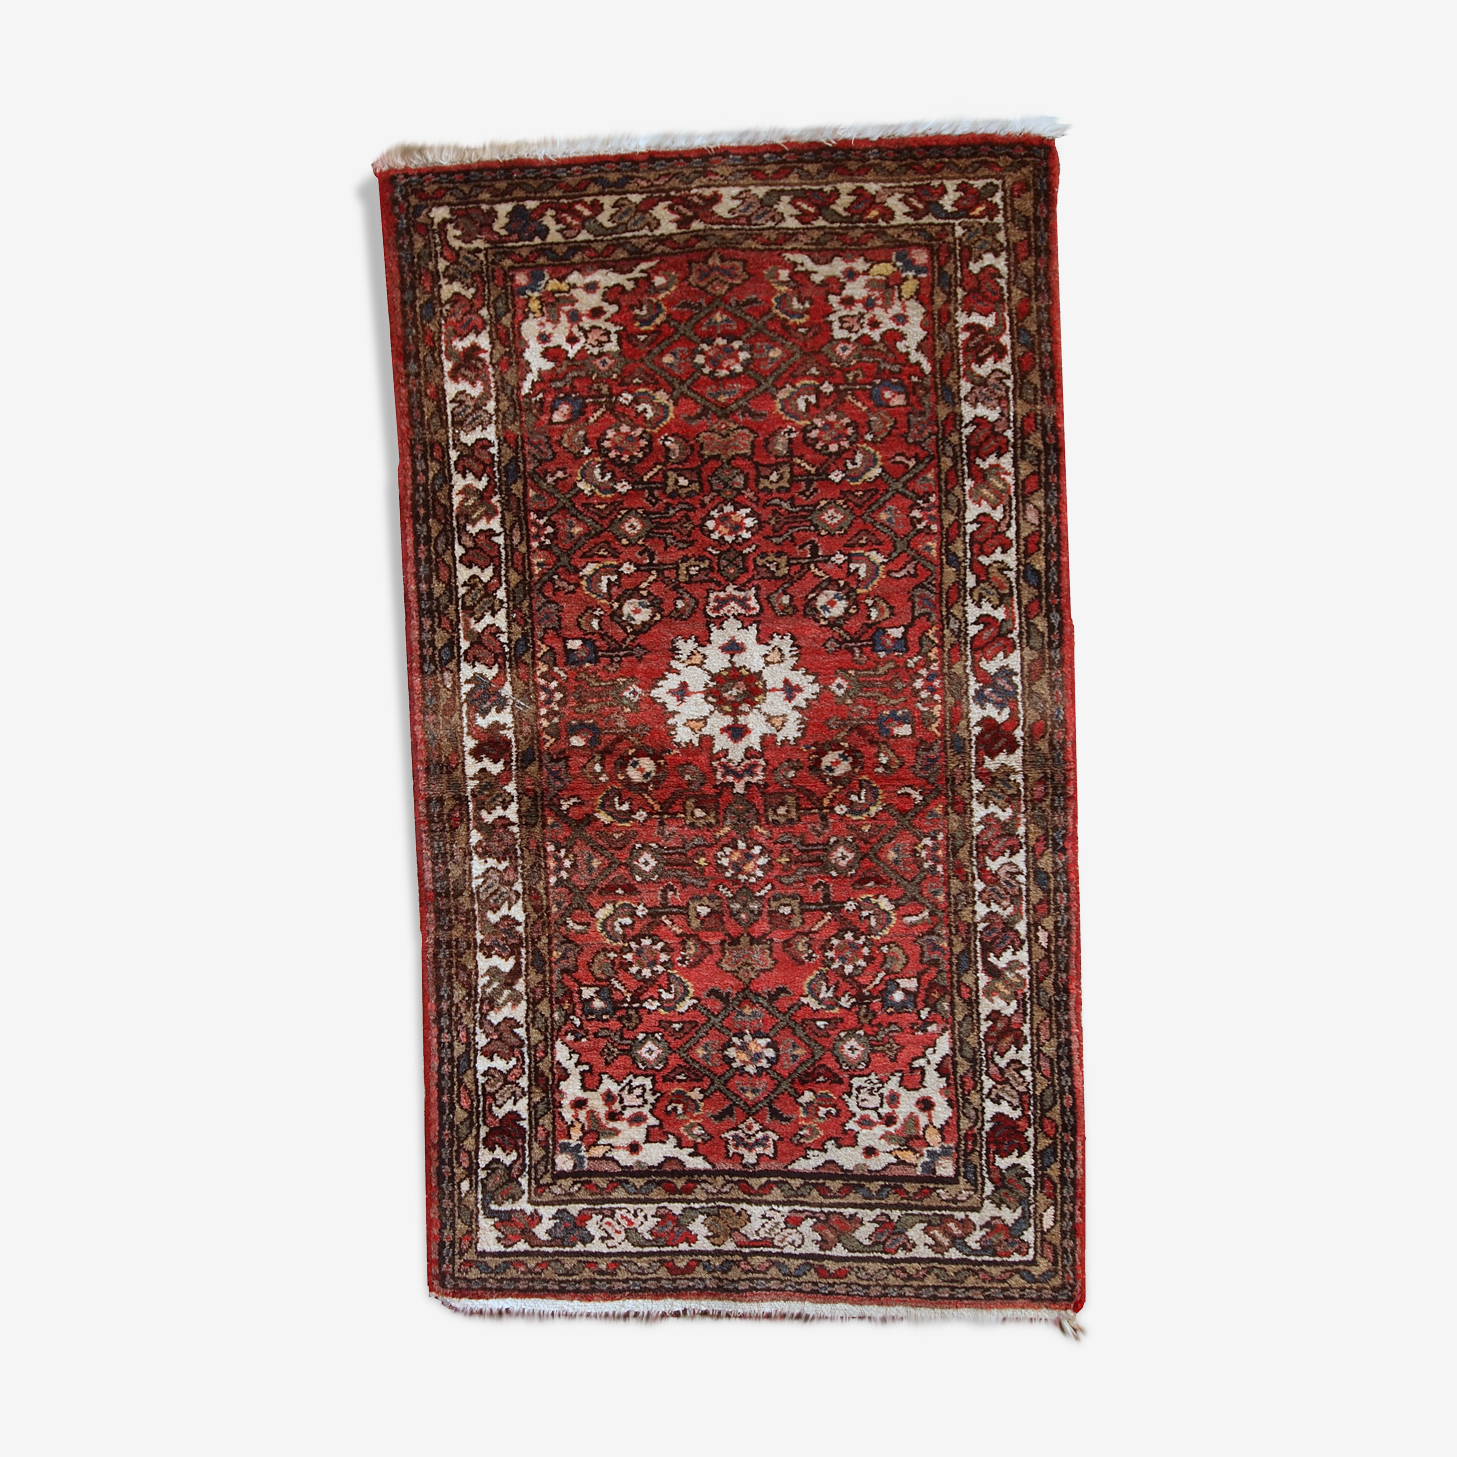 Carpet vintage Persian Hamadan done hand 75 x 132 cm of the 1970s